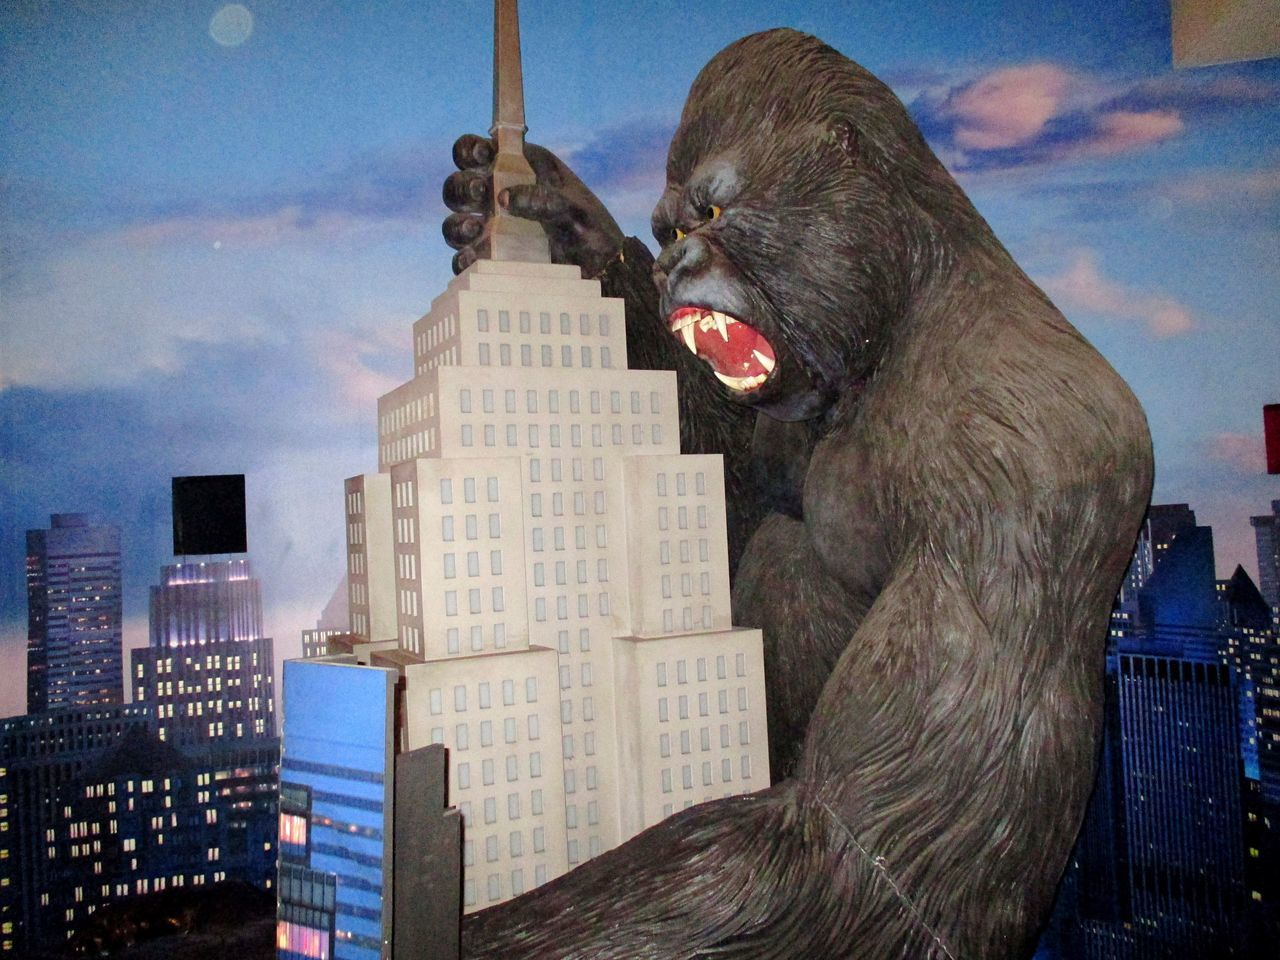 King Kong at the entrance of MadameTussauds museum in New York City Madametussauds Artistic Holywood New York City Empire State Building Empirestatebuilding Skyscrapers Kingkong  ArtPop Film MOVIE Filmstar Moviestar Movie Star New York The Best Of New York ArtWork NYC NYC Photography United States I Heart New York Ideas Creativity Arts Culture And Entertainment Art